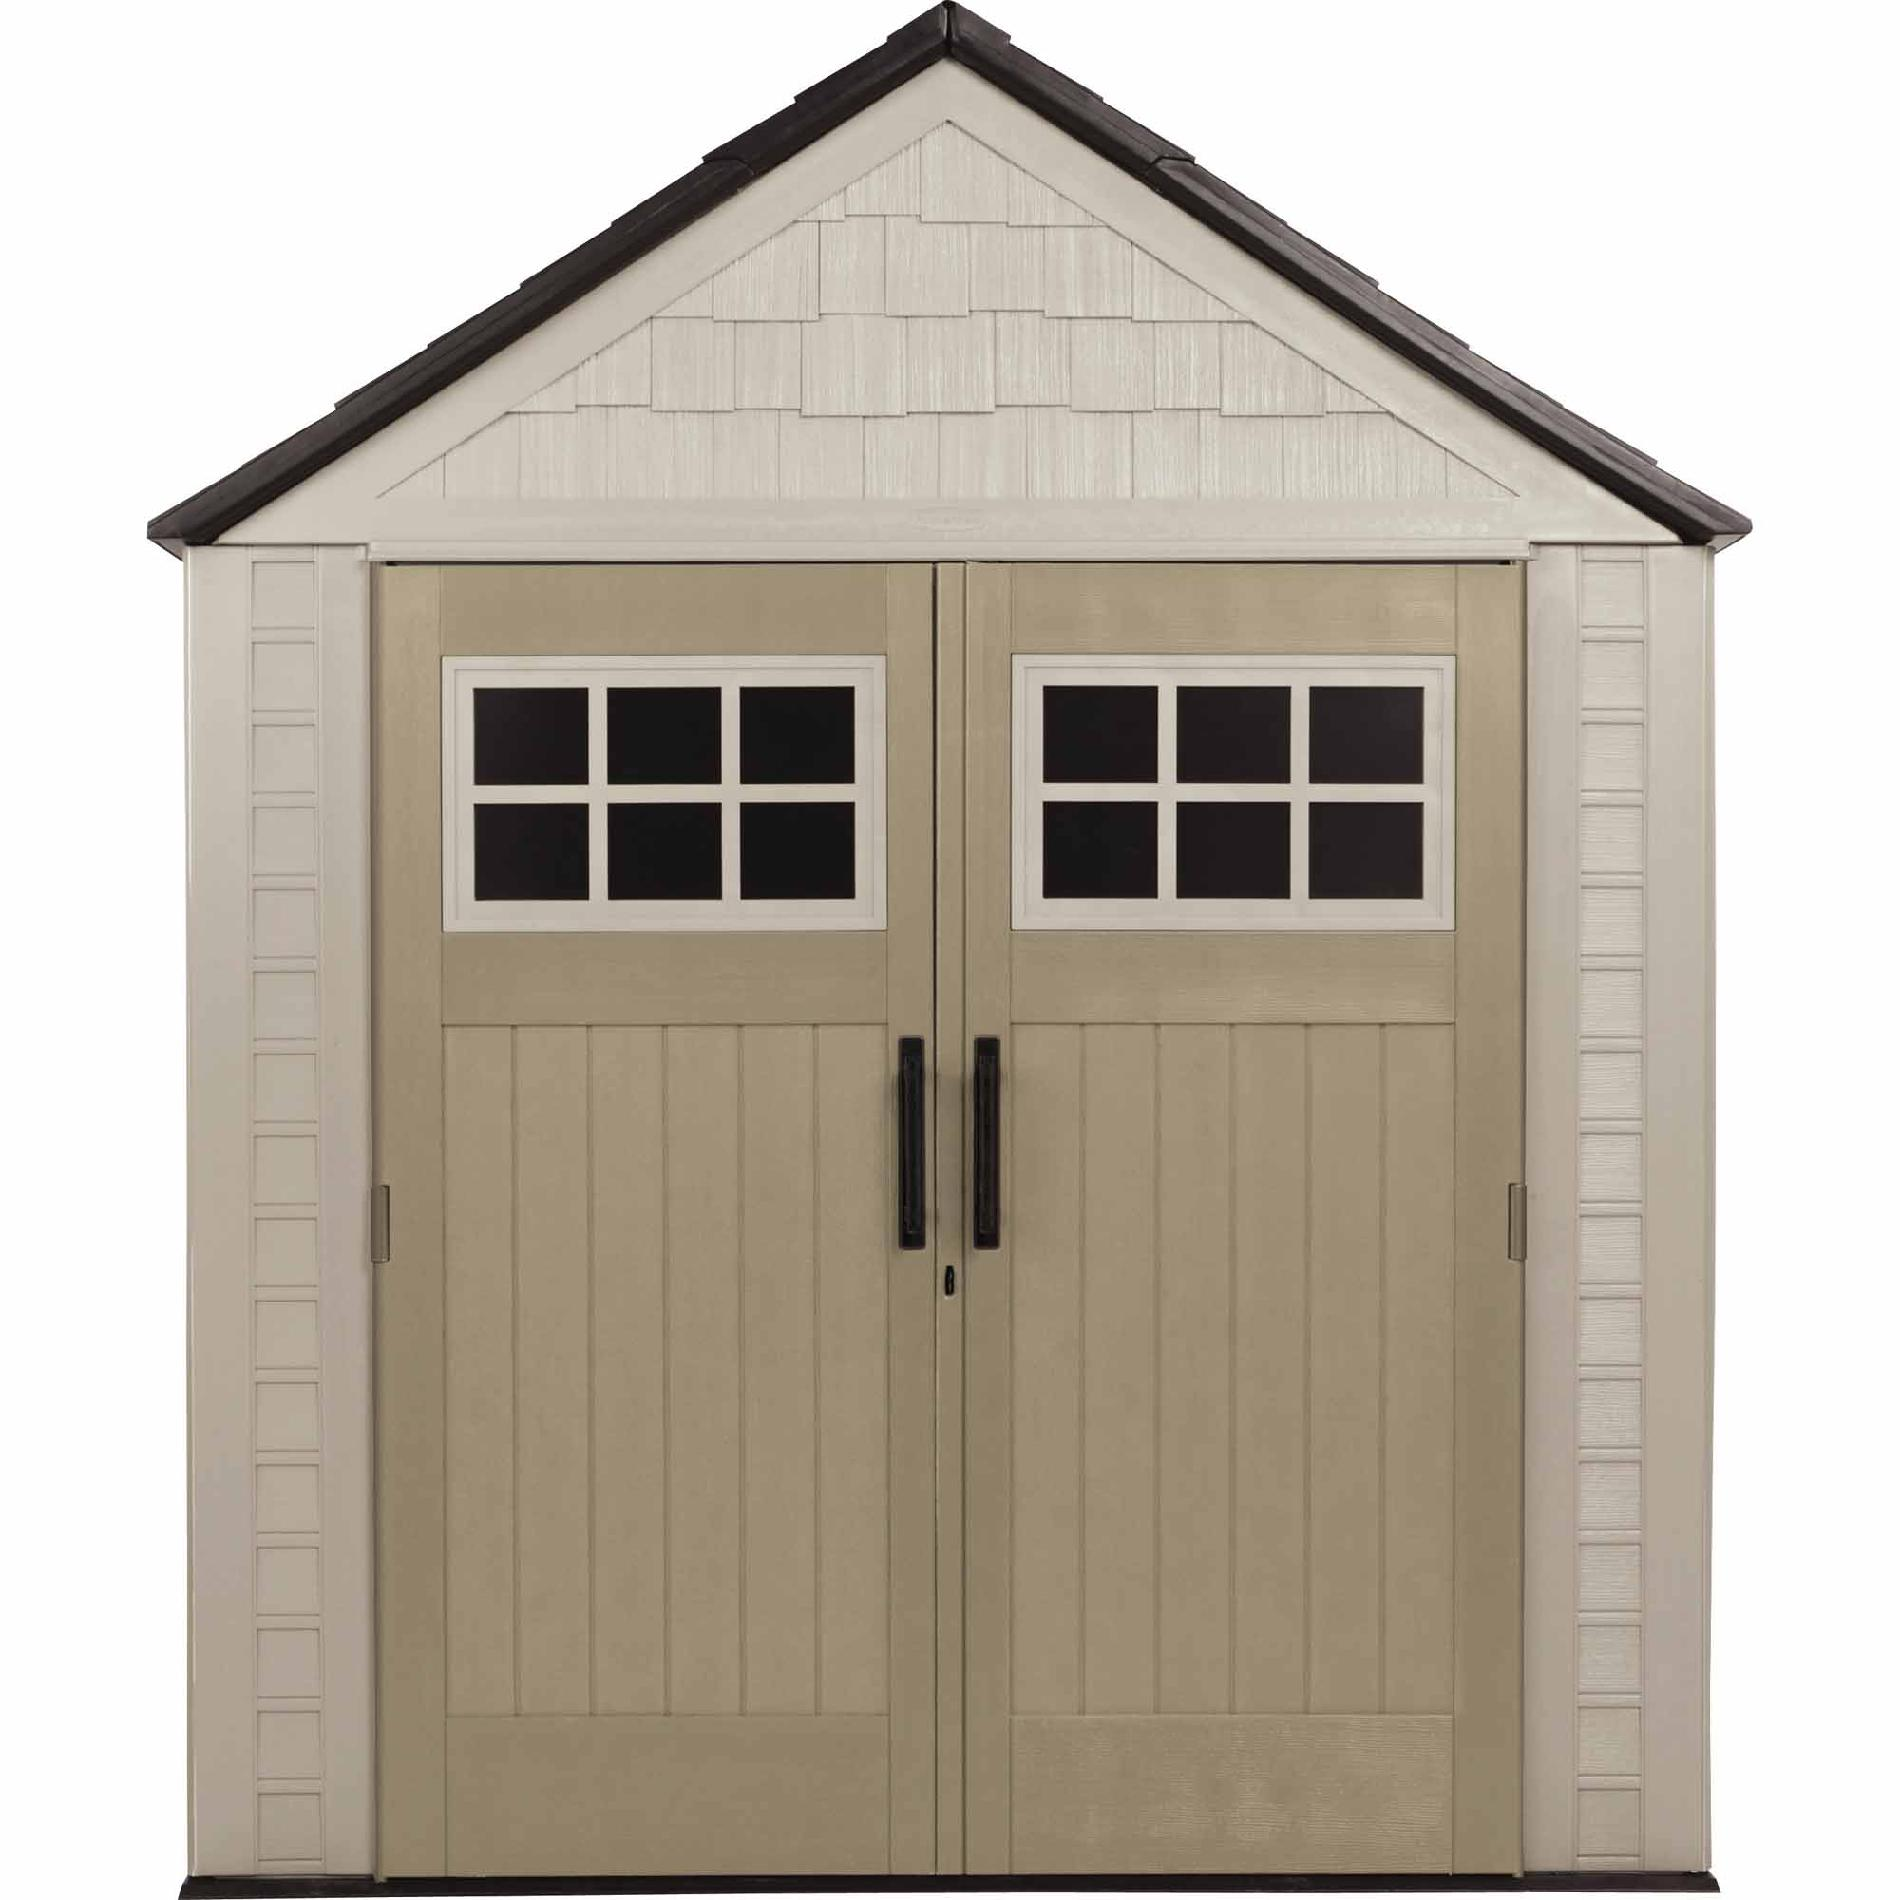 Rubbermaid Outdoor Resin Storage Shed 7' X - Lawn